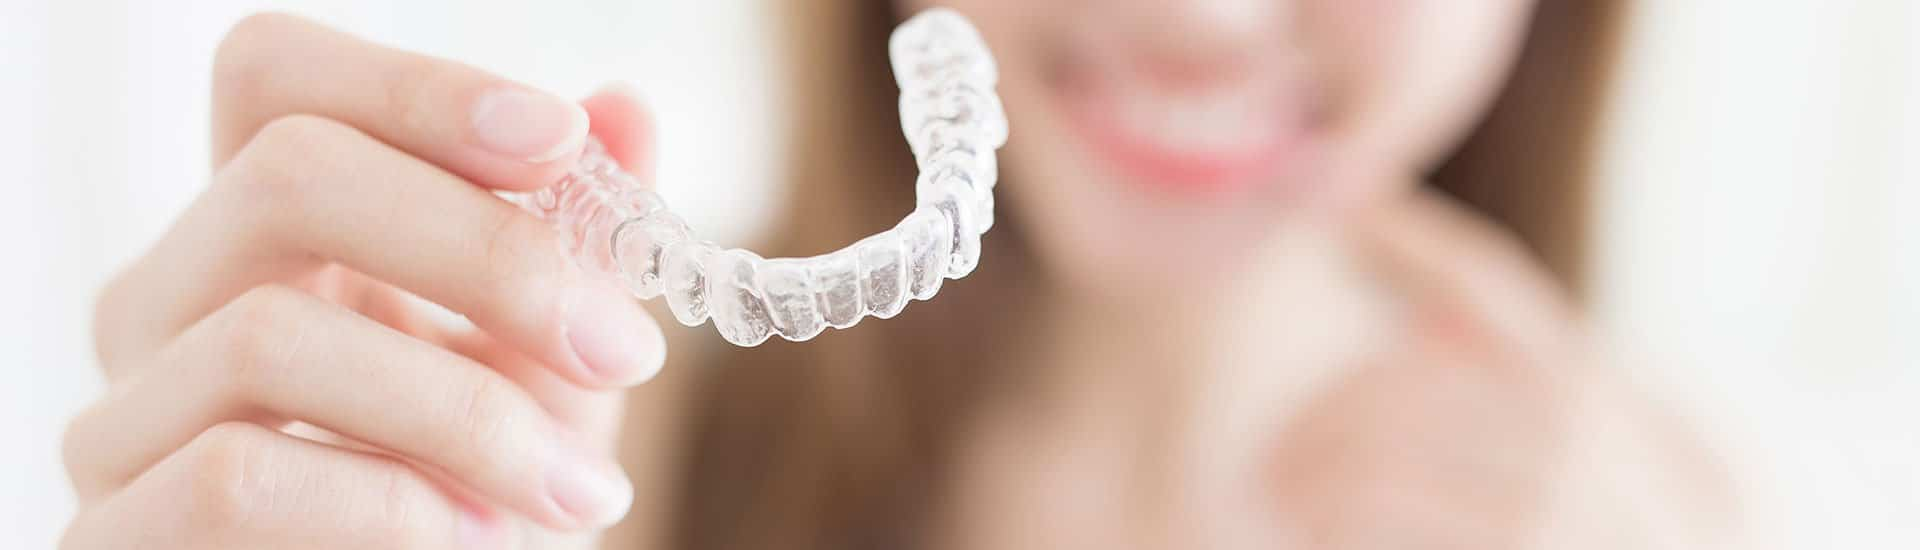 Invisalign and Spark Clear Aligner System Treatment in The Woodlands, TX